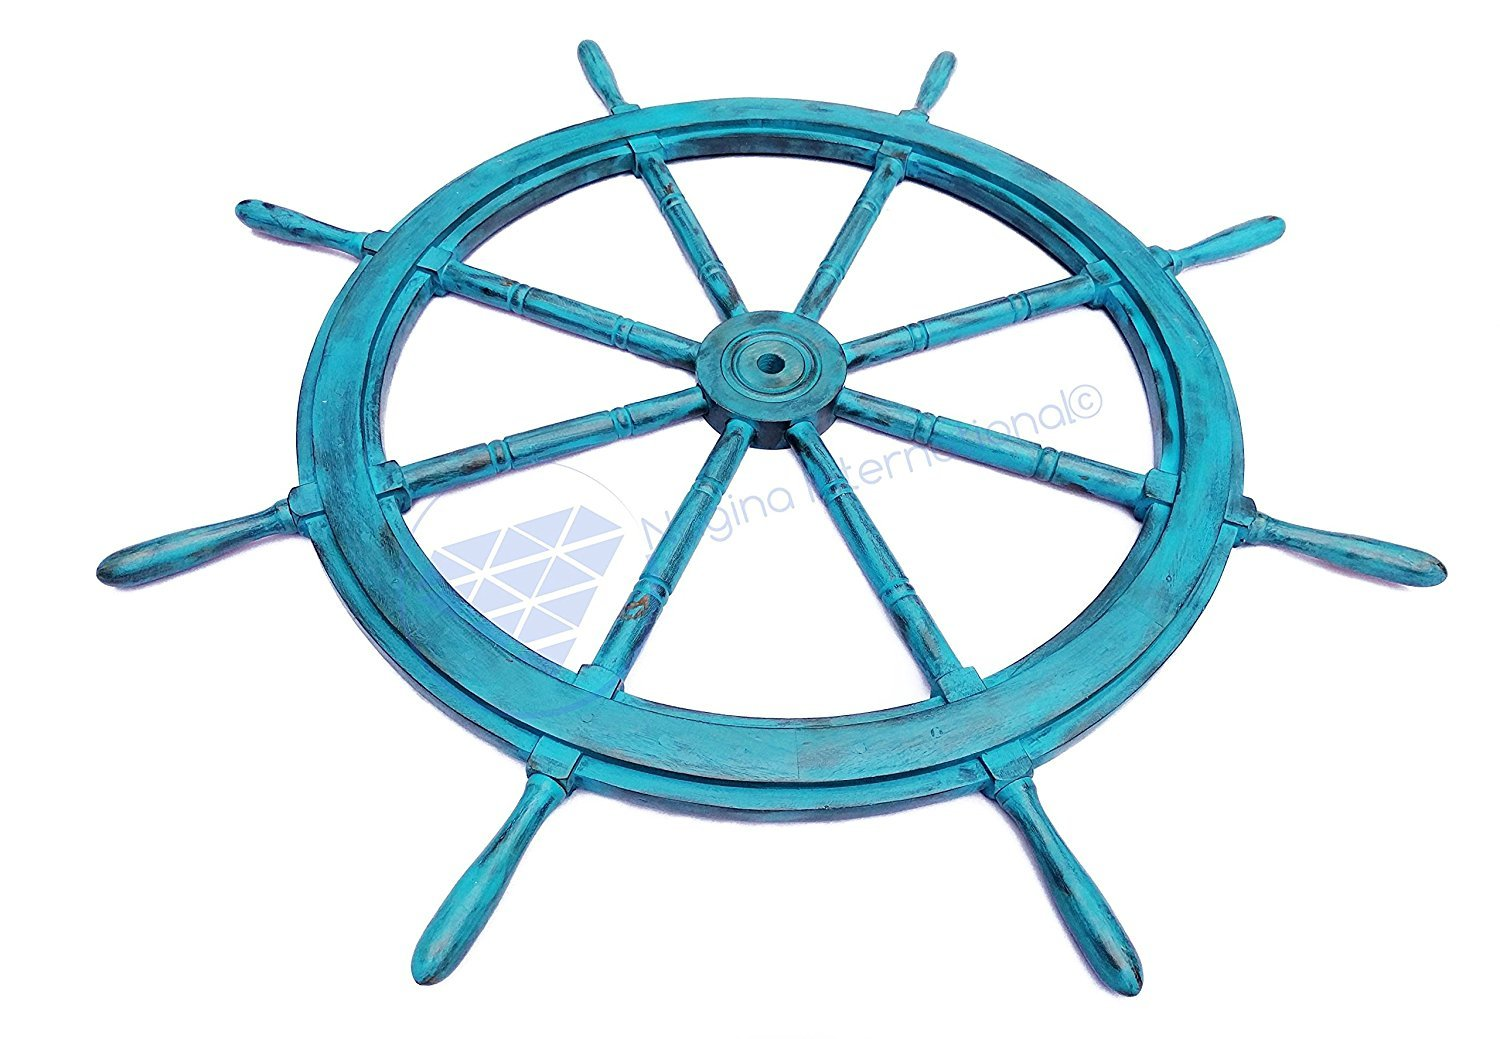 Fresh Water Blue Vintage Teal Hand Crafted Nautical Ship Wheel - Wood Hub Motiff - Pirate's Large Steering - Nagina International (60 Inches)